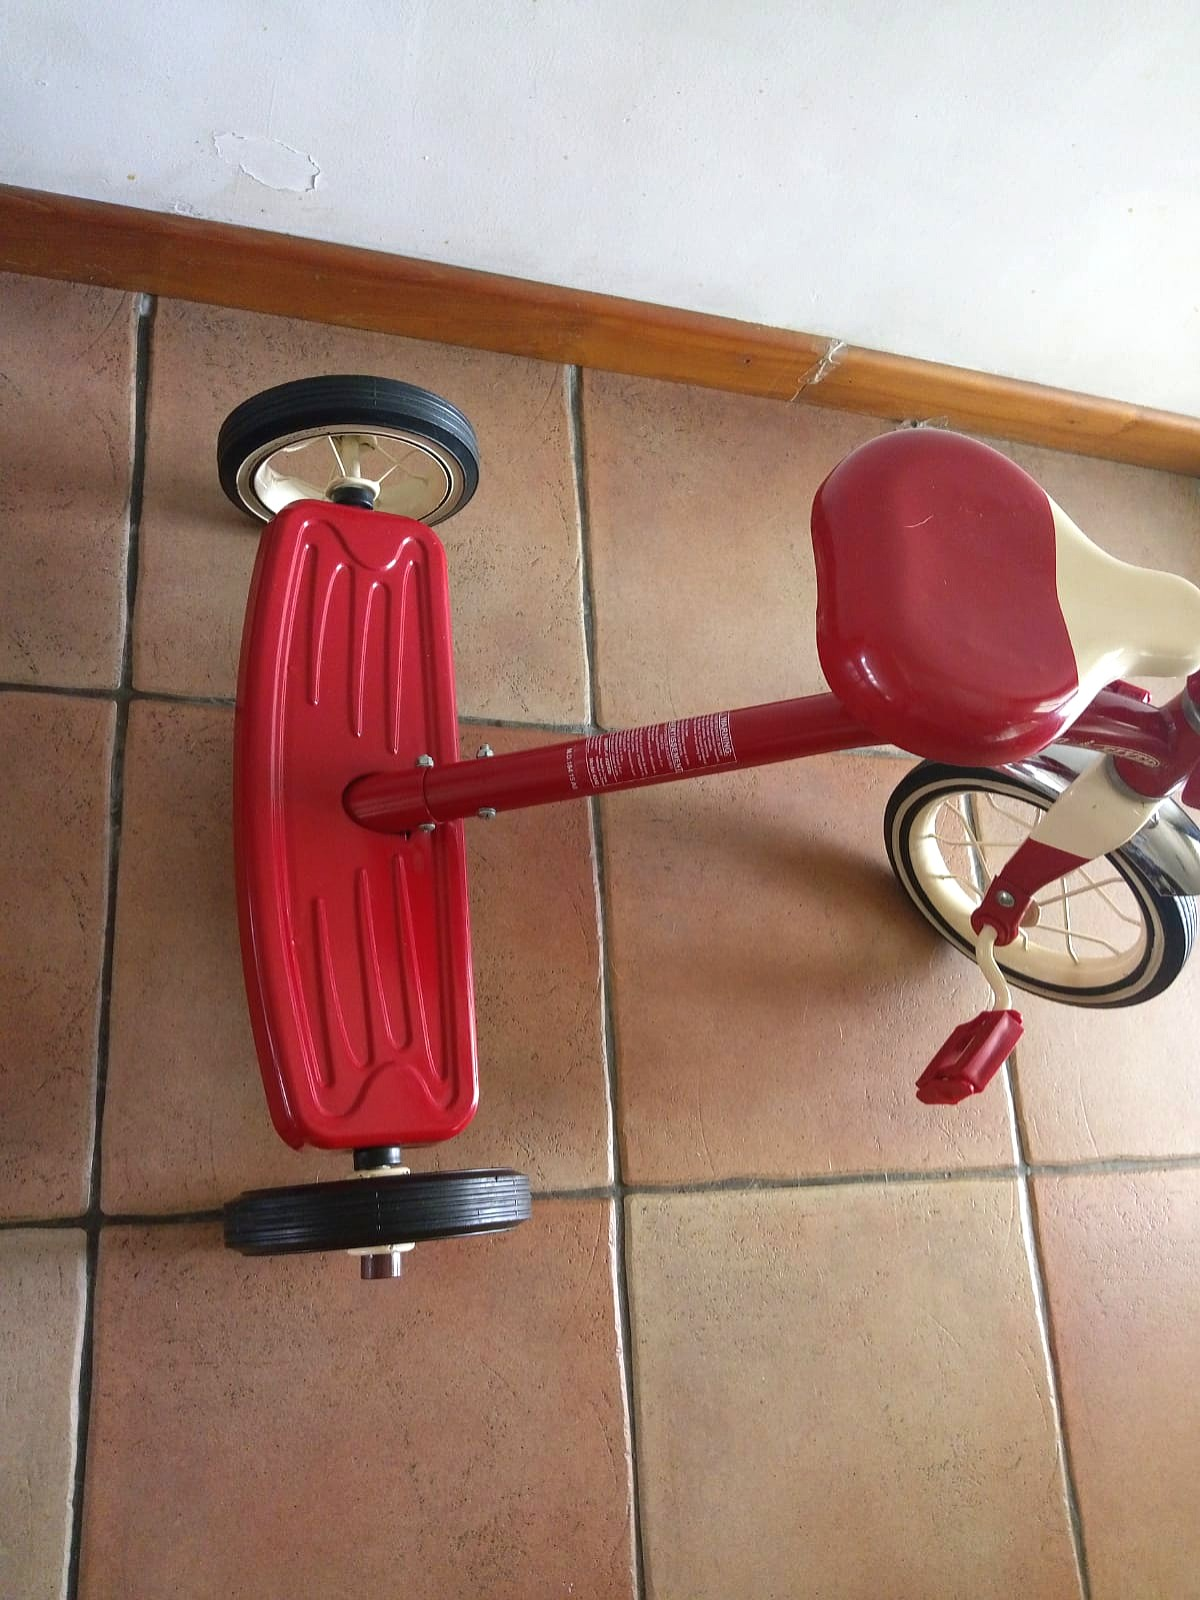 Vintage Kids Tricycle, Vintage & Collectibles, Vintage Collectibles On Carousell